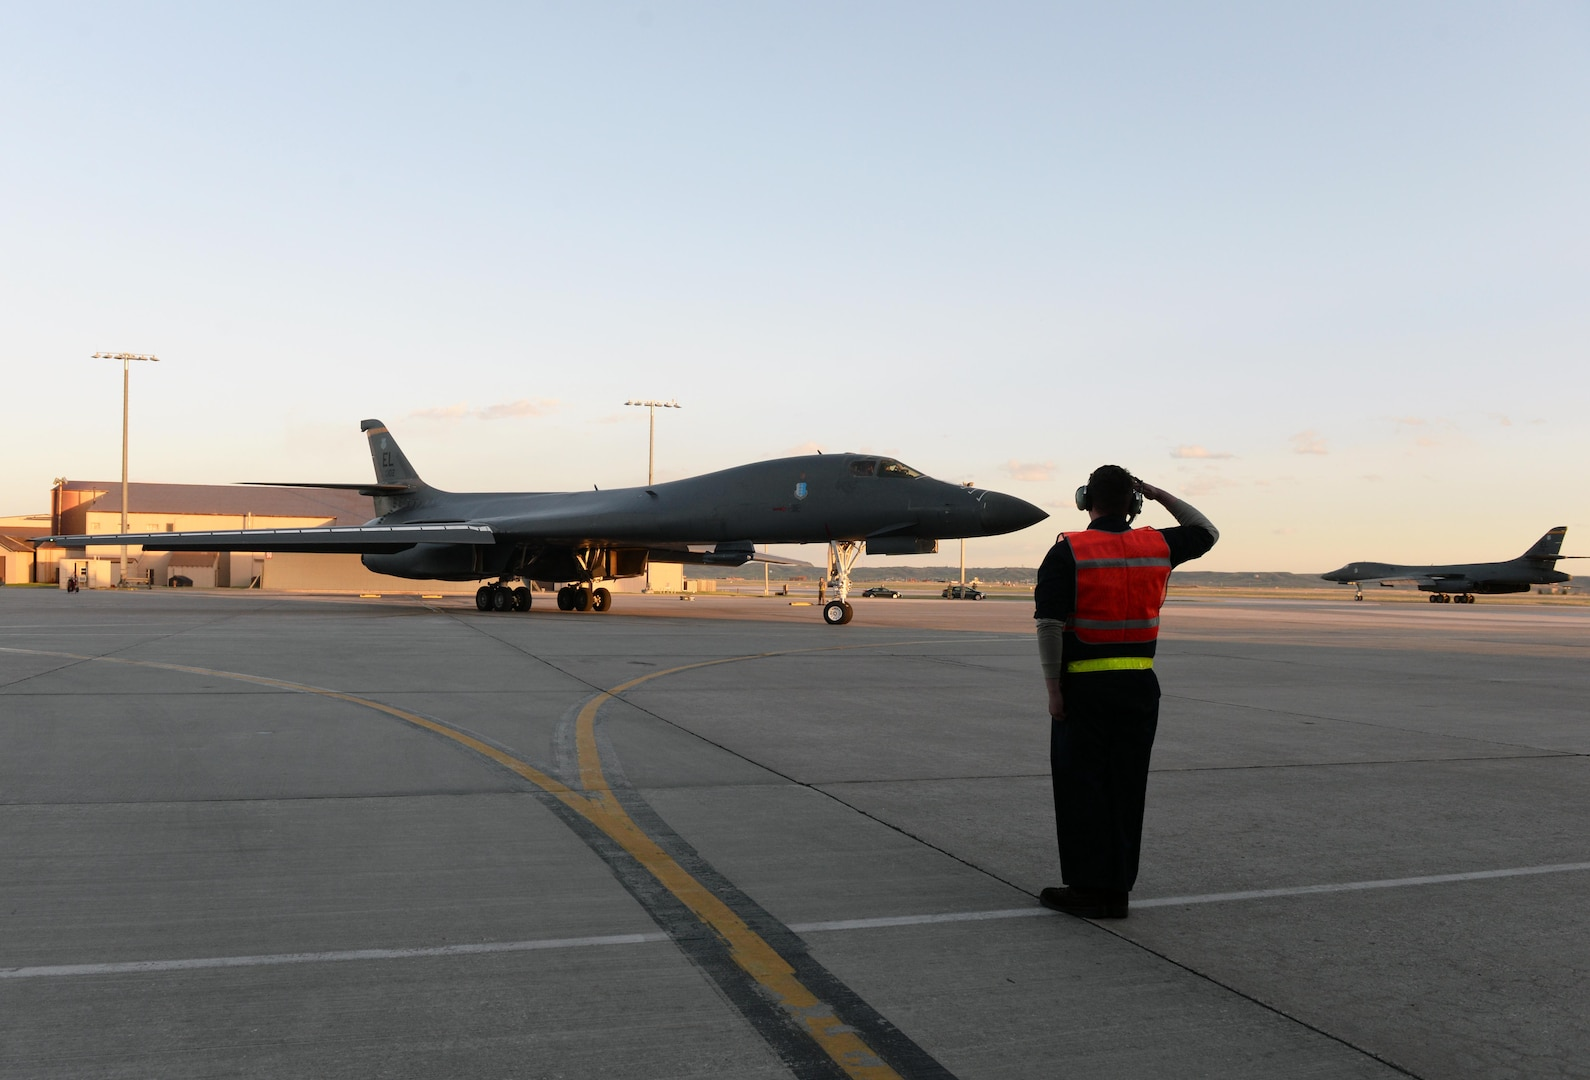 A maintainer salutes a B-1B Lancer assigned to the 28th Bomb Wing as it taxis to the runway to launch from Ellsworth Air Force Base, S.D., April 28, 2020. A pair of B-1s flew from the continental United States and conducted operations over the South China Sea as part of a joint U.S. Indo-Pacific Command and U.S. Strategic Command Bomber Task Force mission. (U.S. Air Force photo by Airman Quentin Marx)